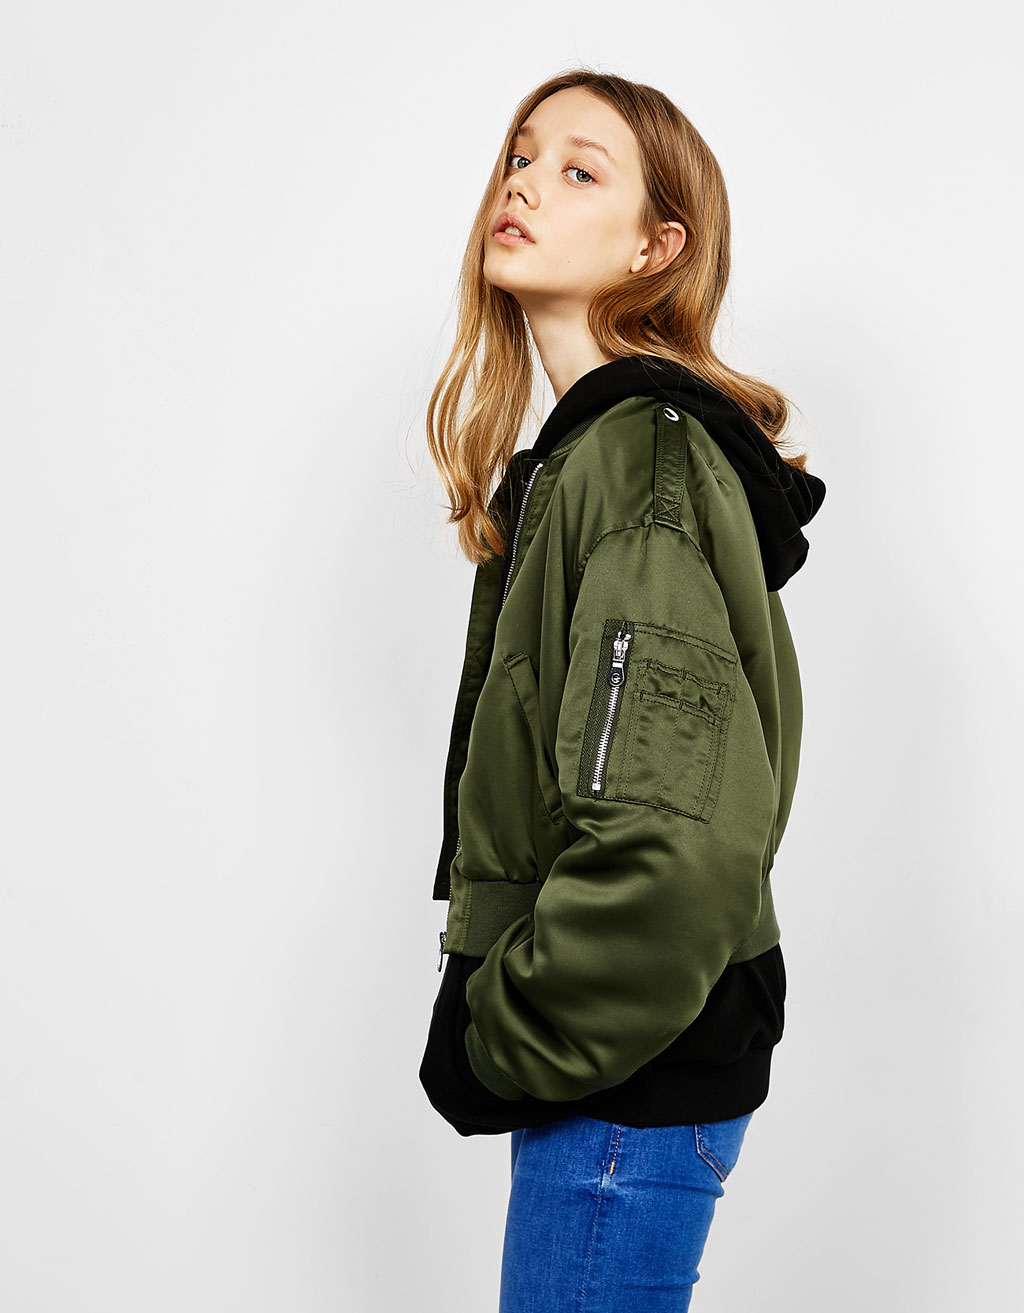 Satin bomber jacket with oversized sleeves